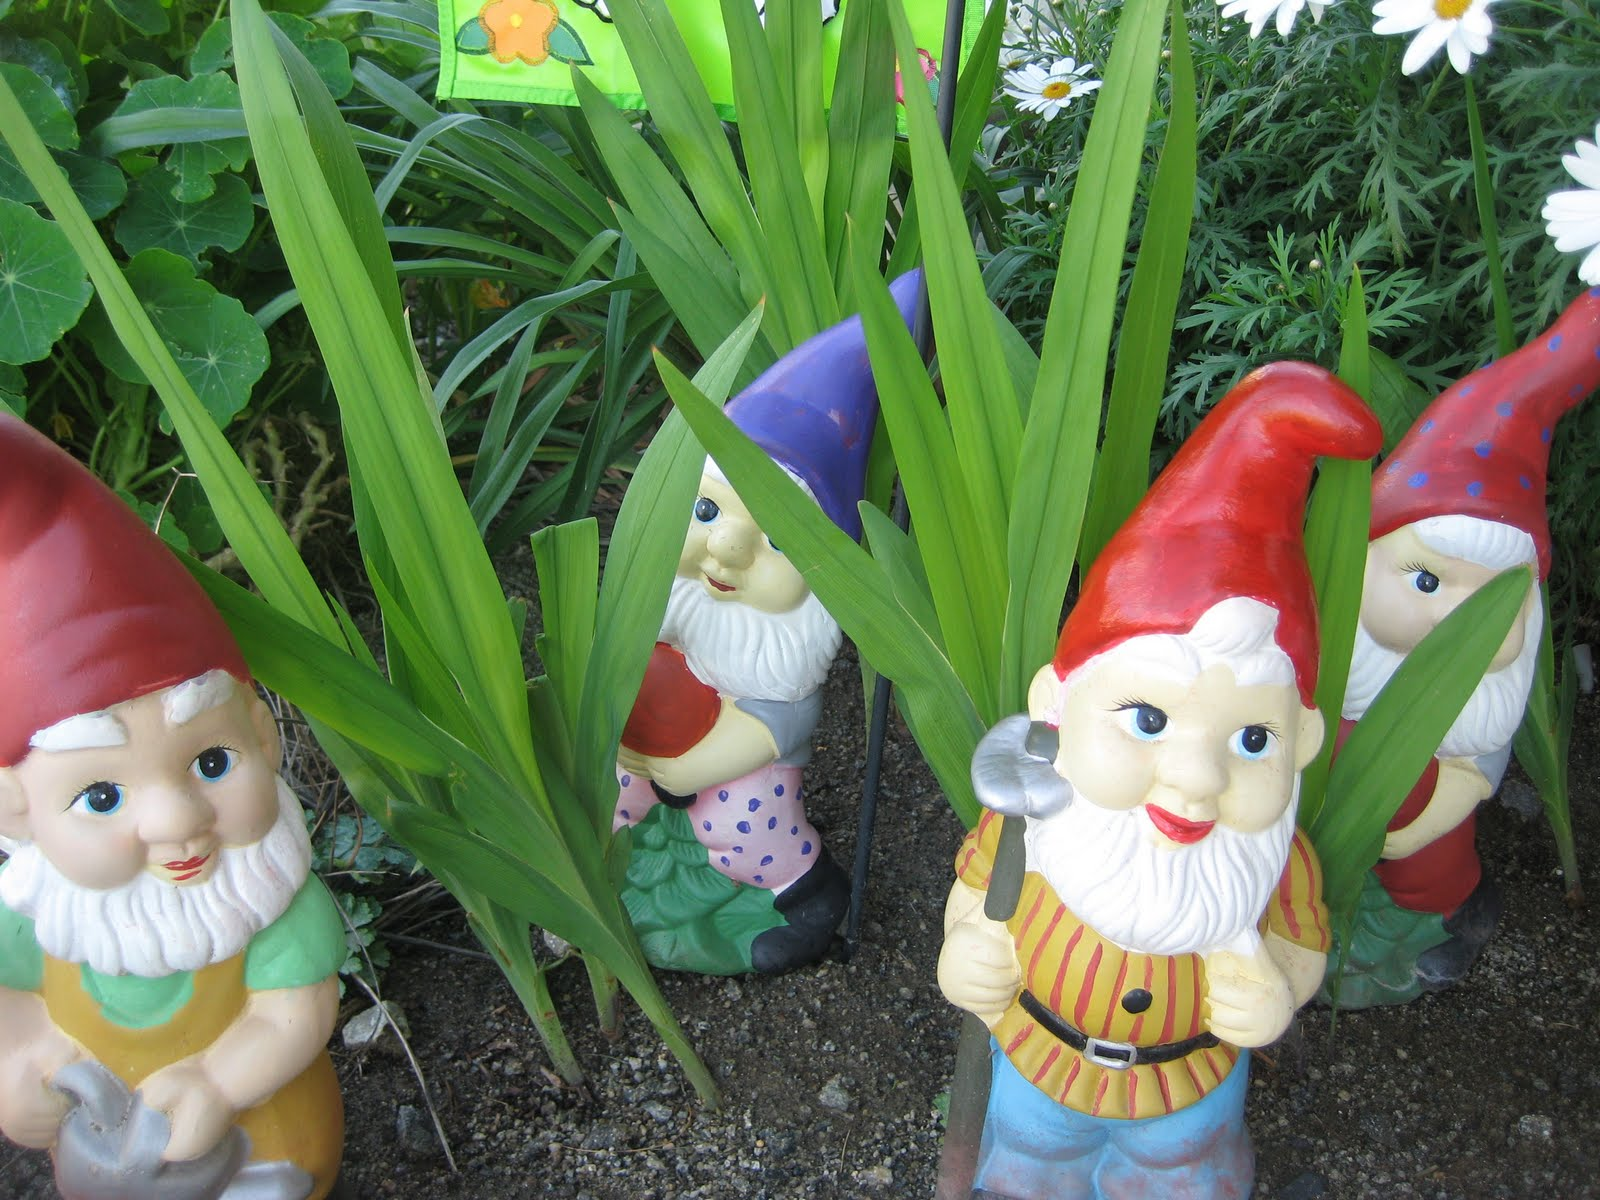 Gnome In Garden: 52andNew: Week 7 -- Gussyin' Up Our Garden Gnomes